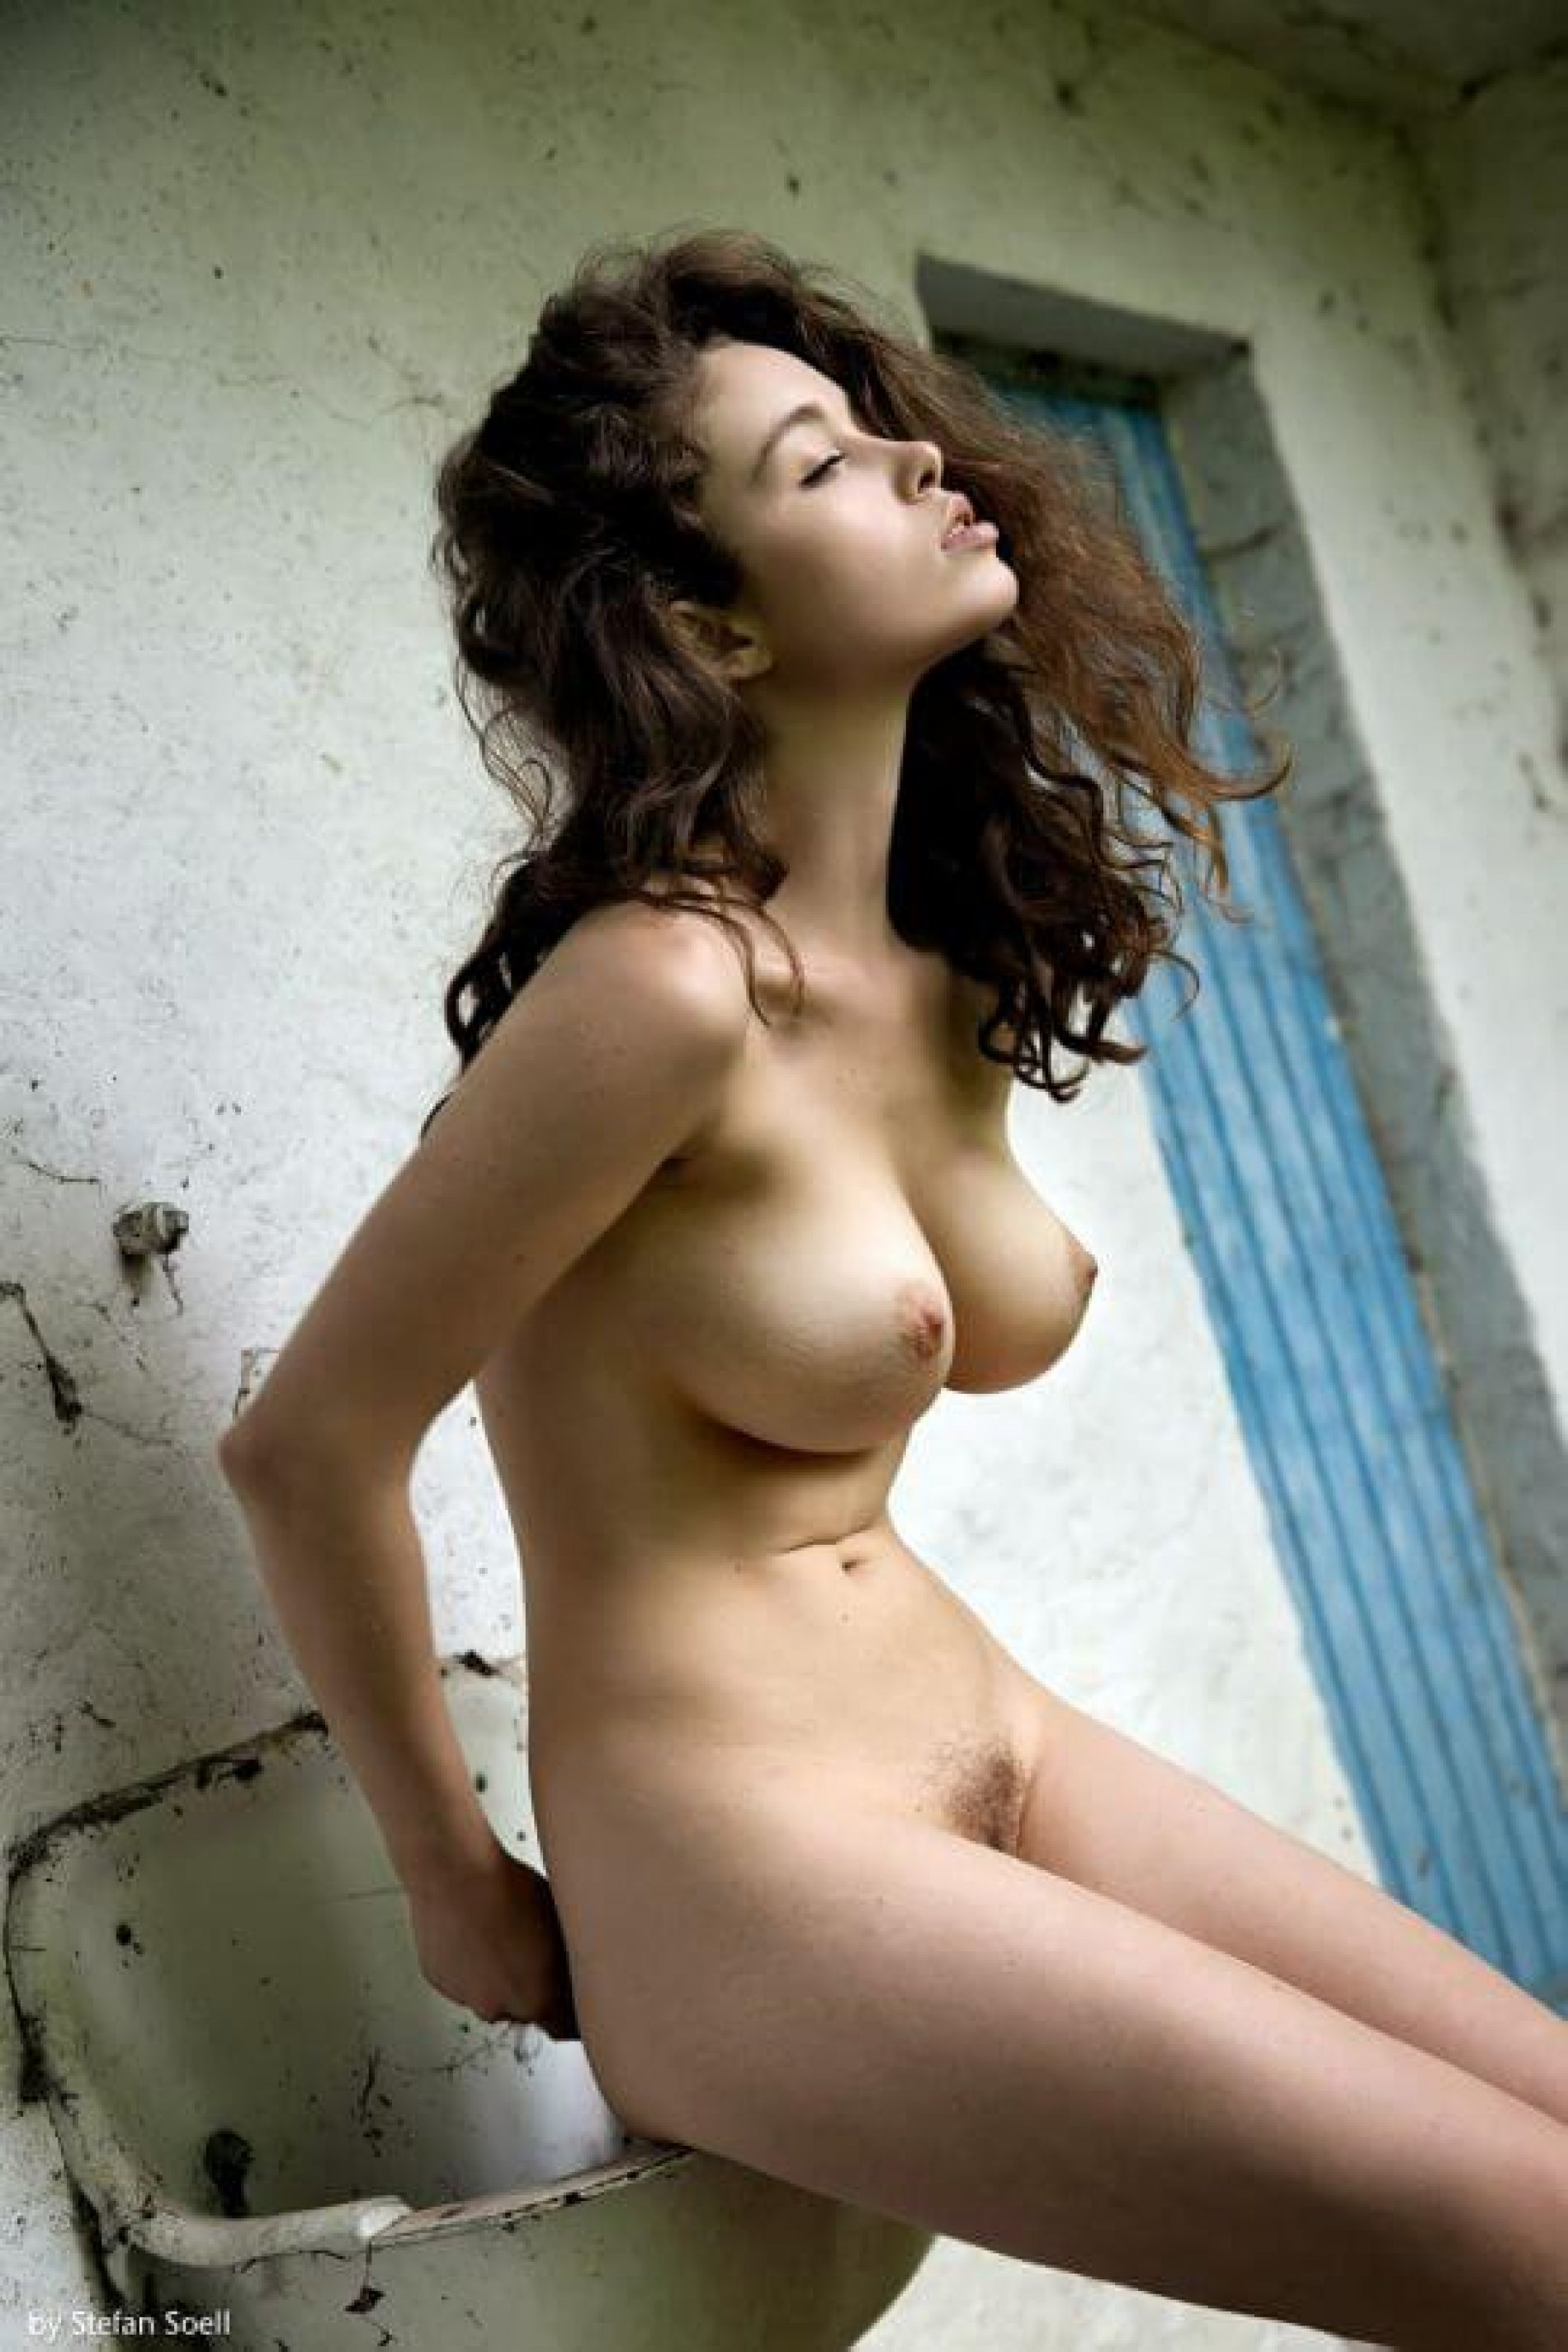 Just naked